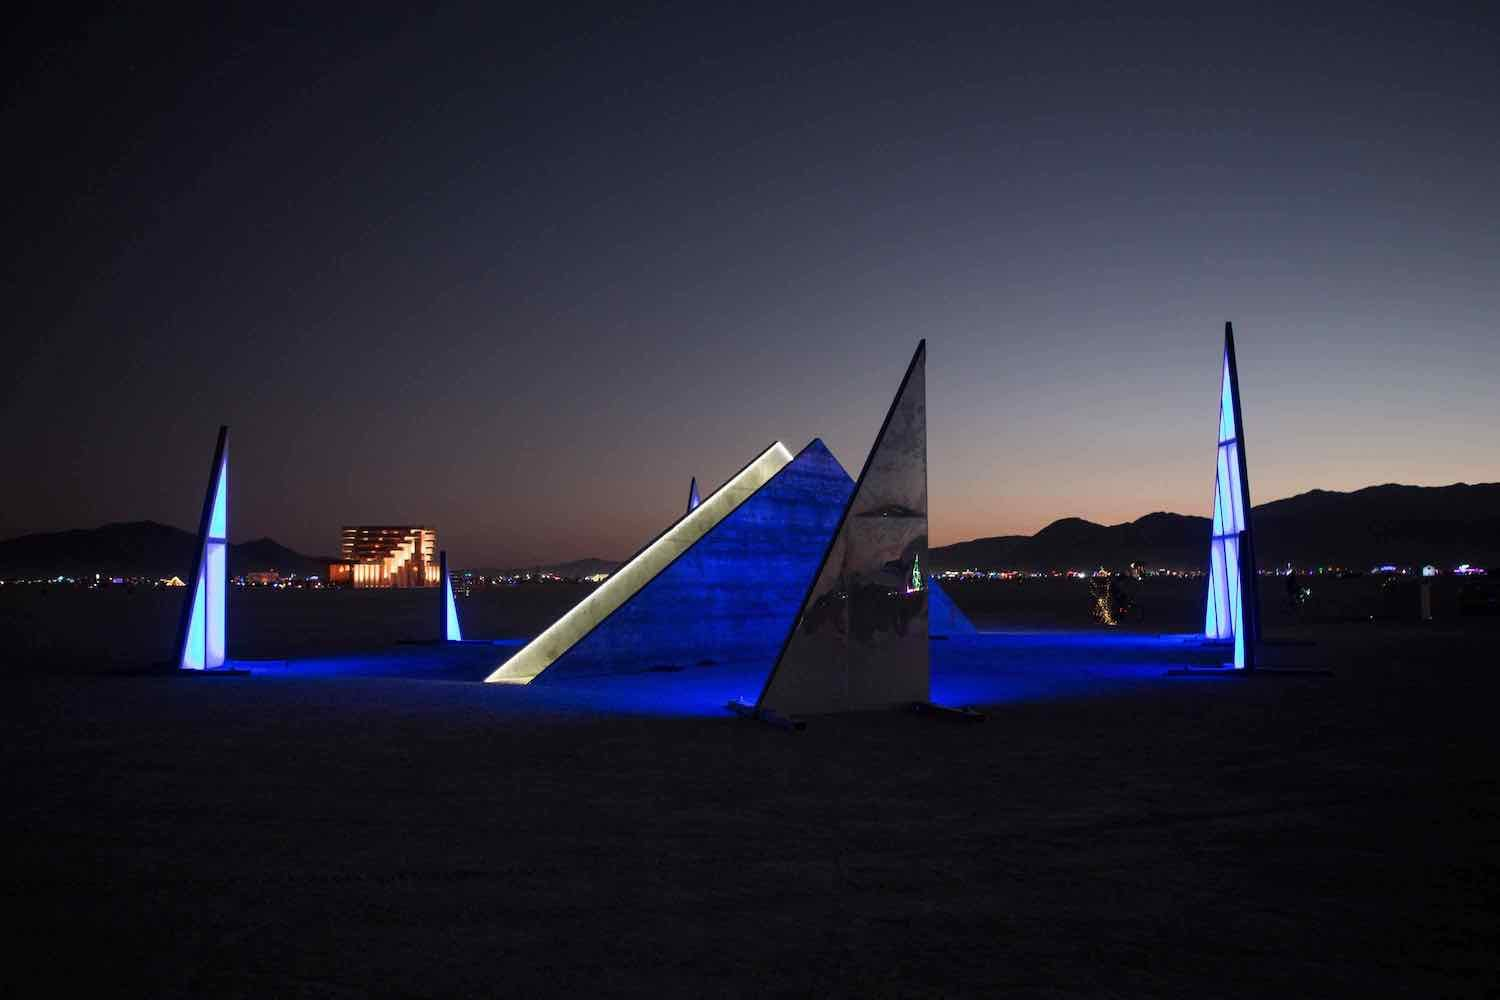 FRAGMENTS installation by Marc Ippon De Ronda @ BurningMan 2019